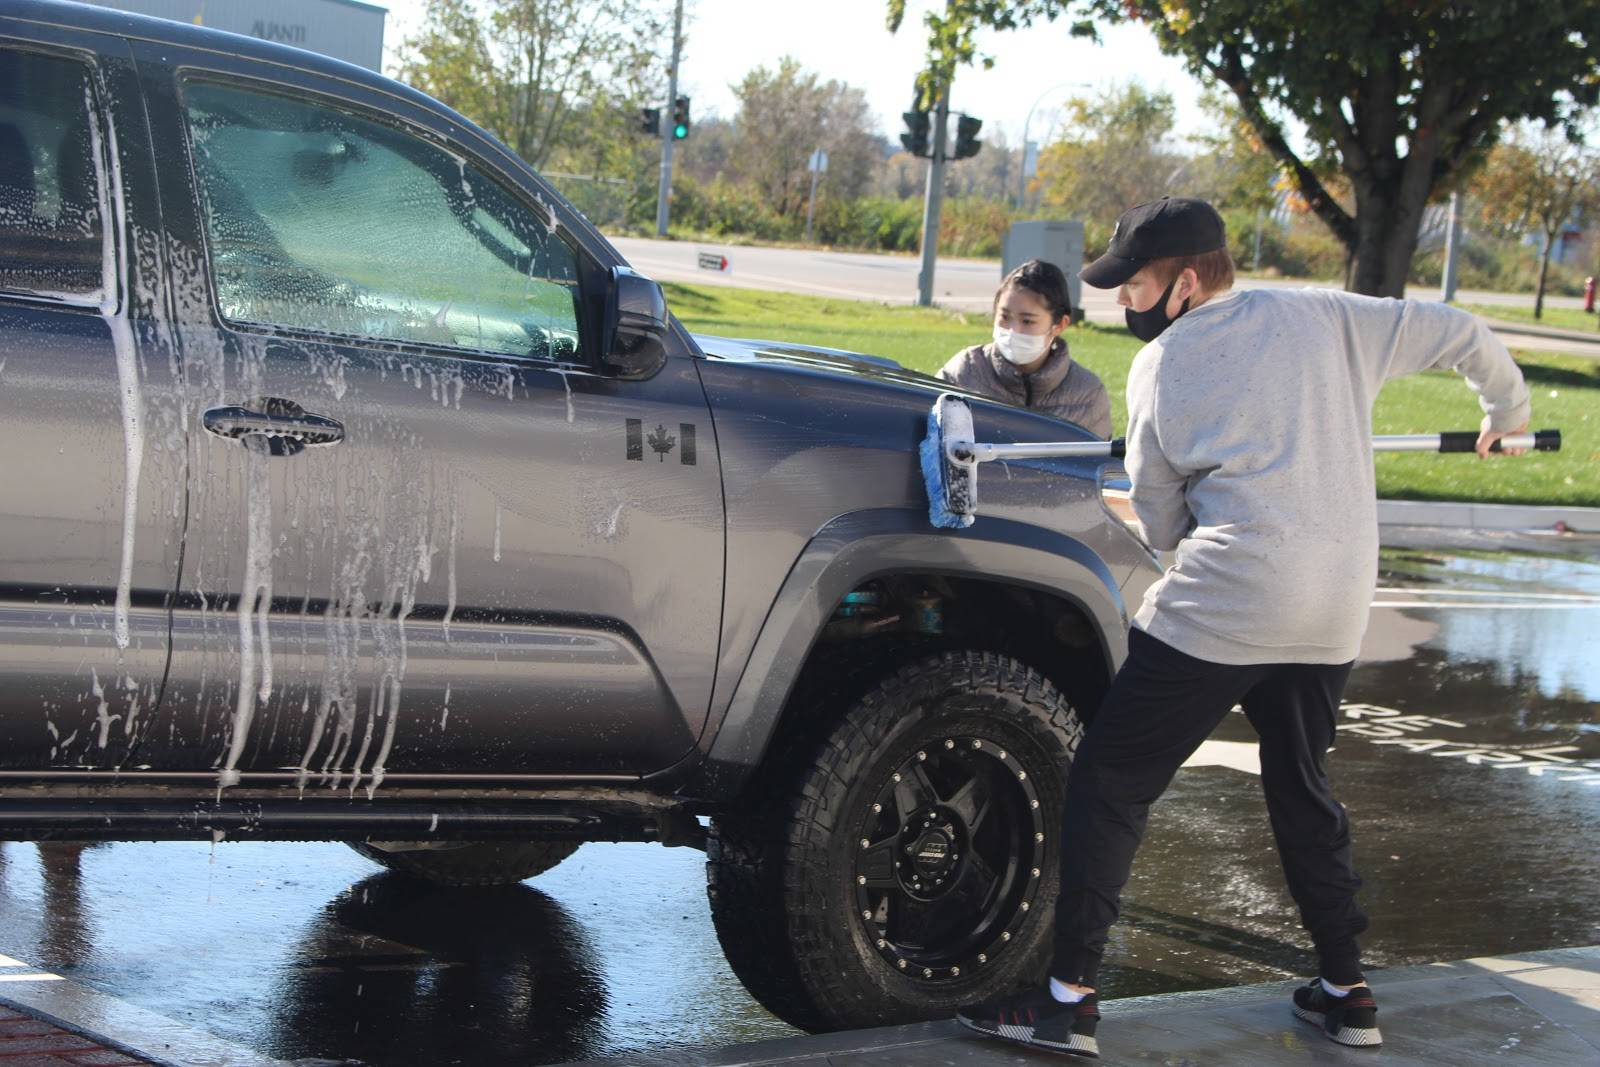 Students at Langley Secondary School held a car wash fundraiser on the weekend of Oct. 24 and 25 to raise money for Cystic Fibrosis Canada. (Erin Florko/Special to Langley Advance Times)